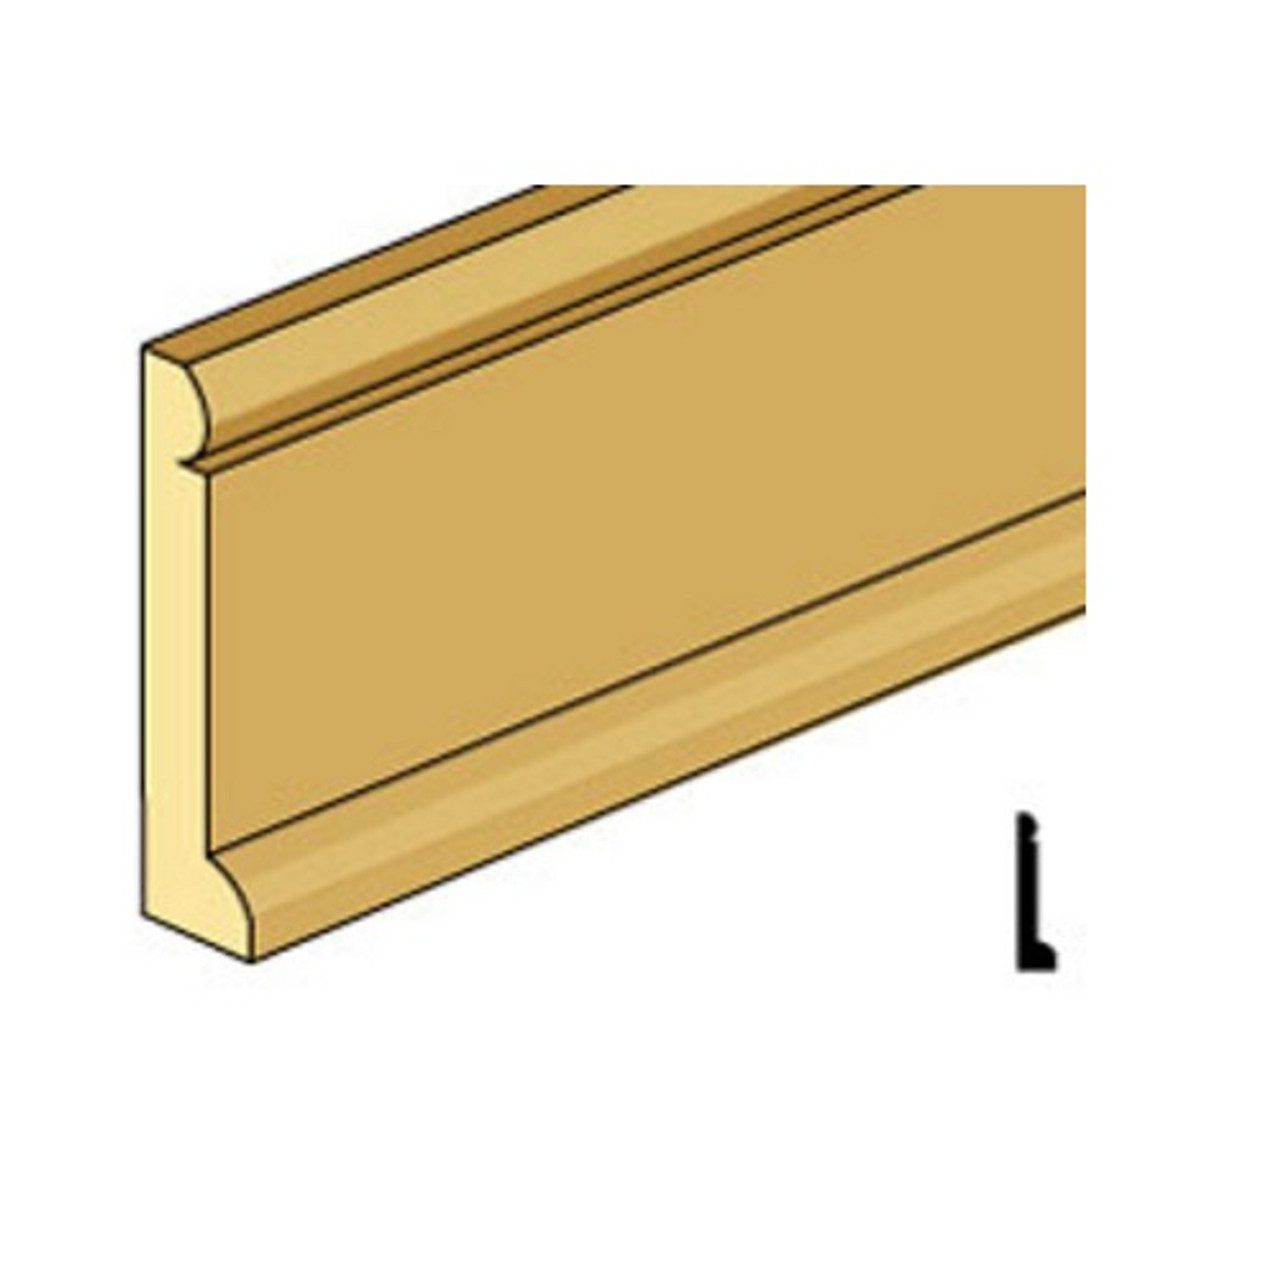 """1/2"""" high baseboard molding with cap and shoe profile."""